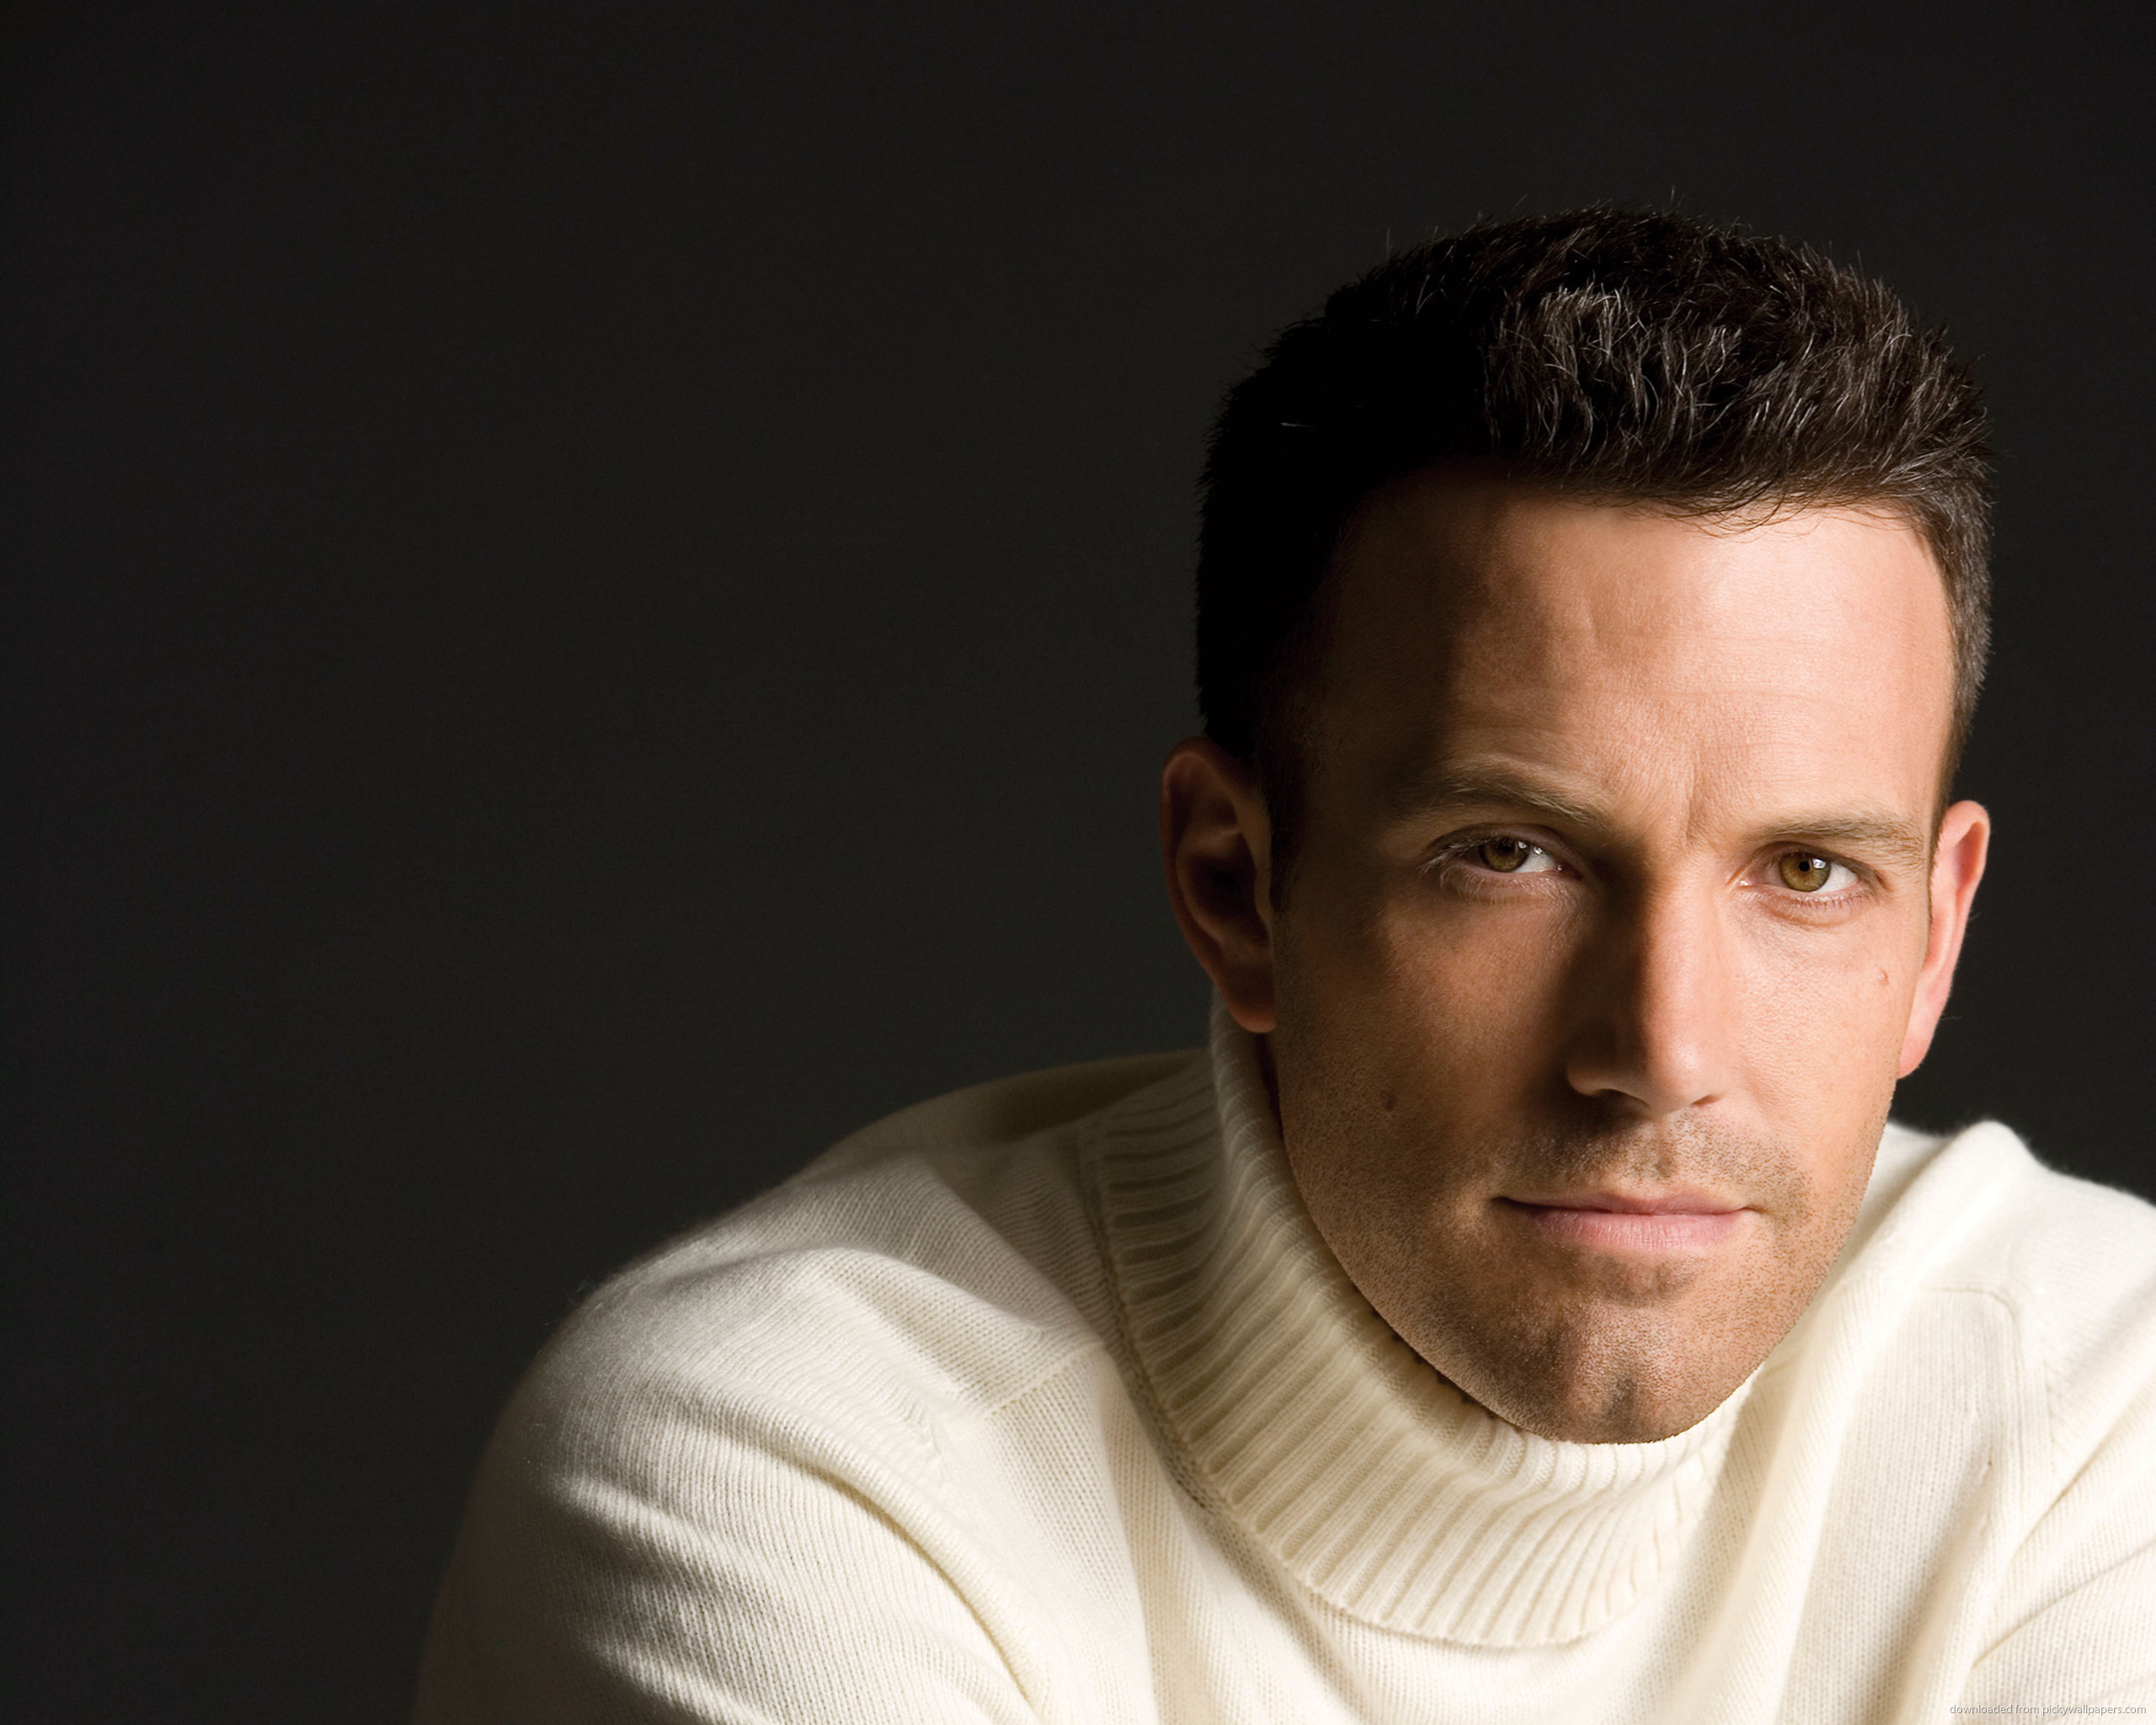 ... Ben Affleck In A Light Turtleneck Sweater for 2560x2048